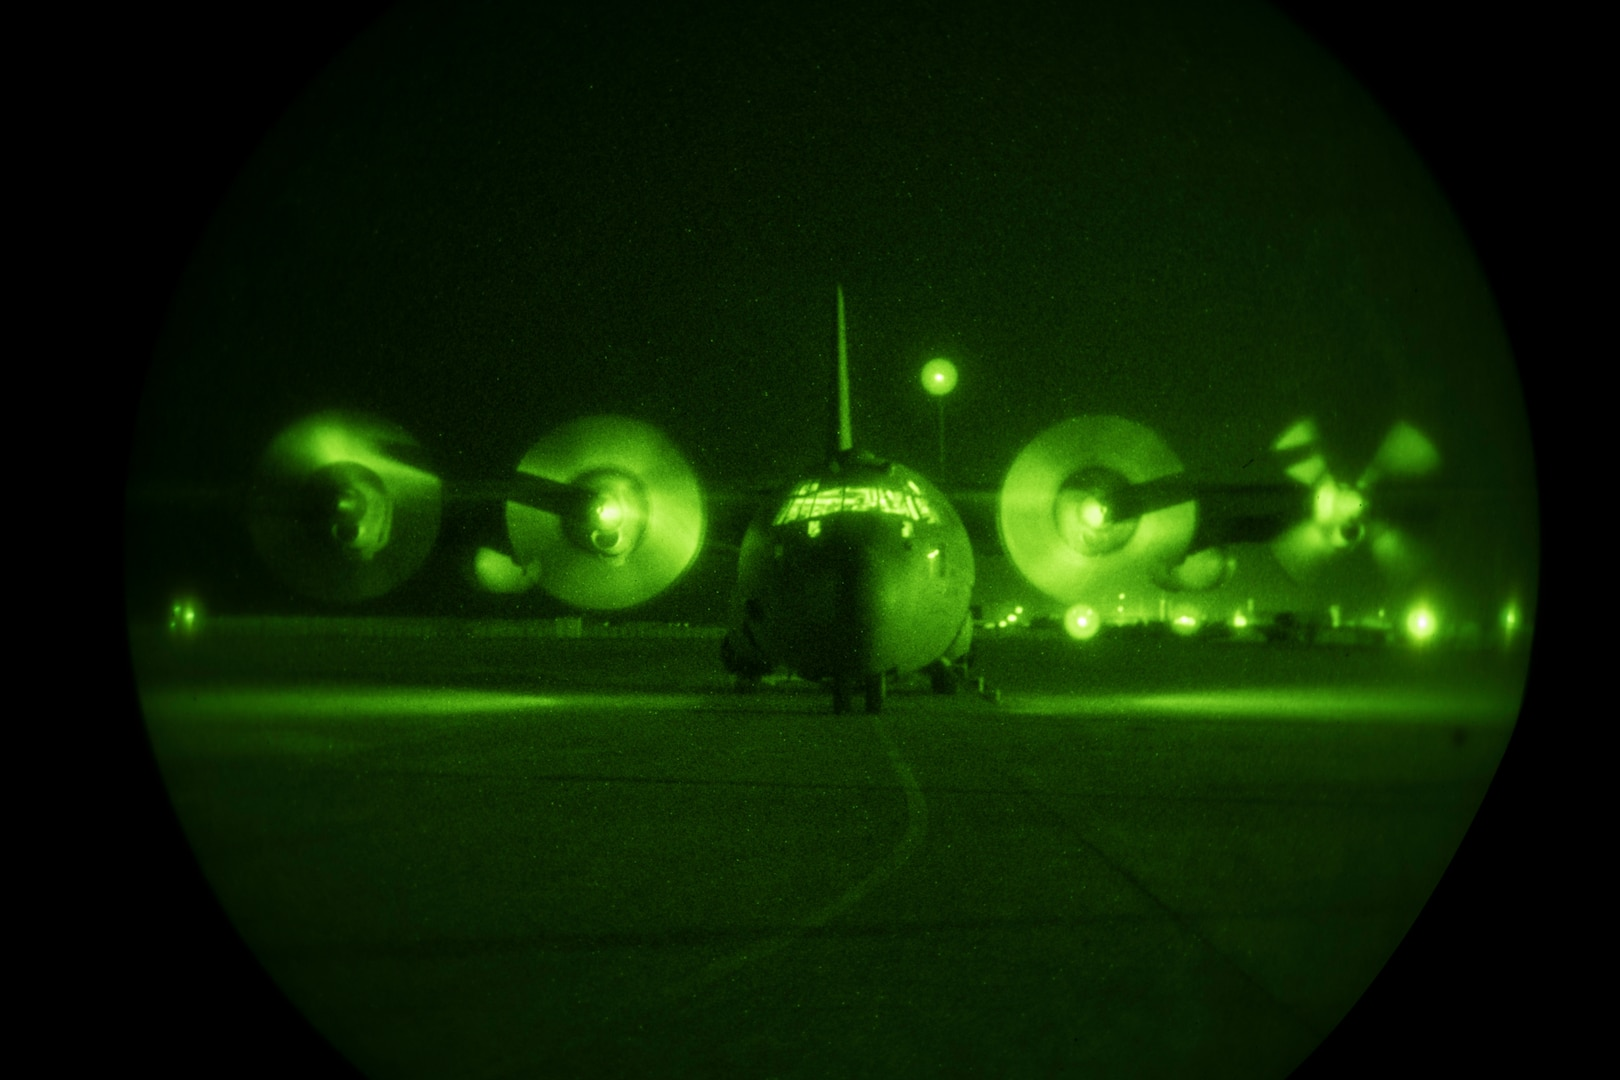 A U.S. Air Force C-130H Hercules assigned to the 746th Expeditionary Airlift Squadron at Al Udeid Air Base, Qatar, prepares to taxi down the runway.